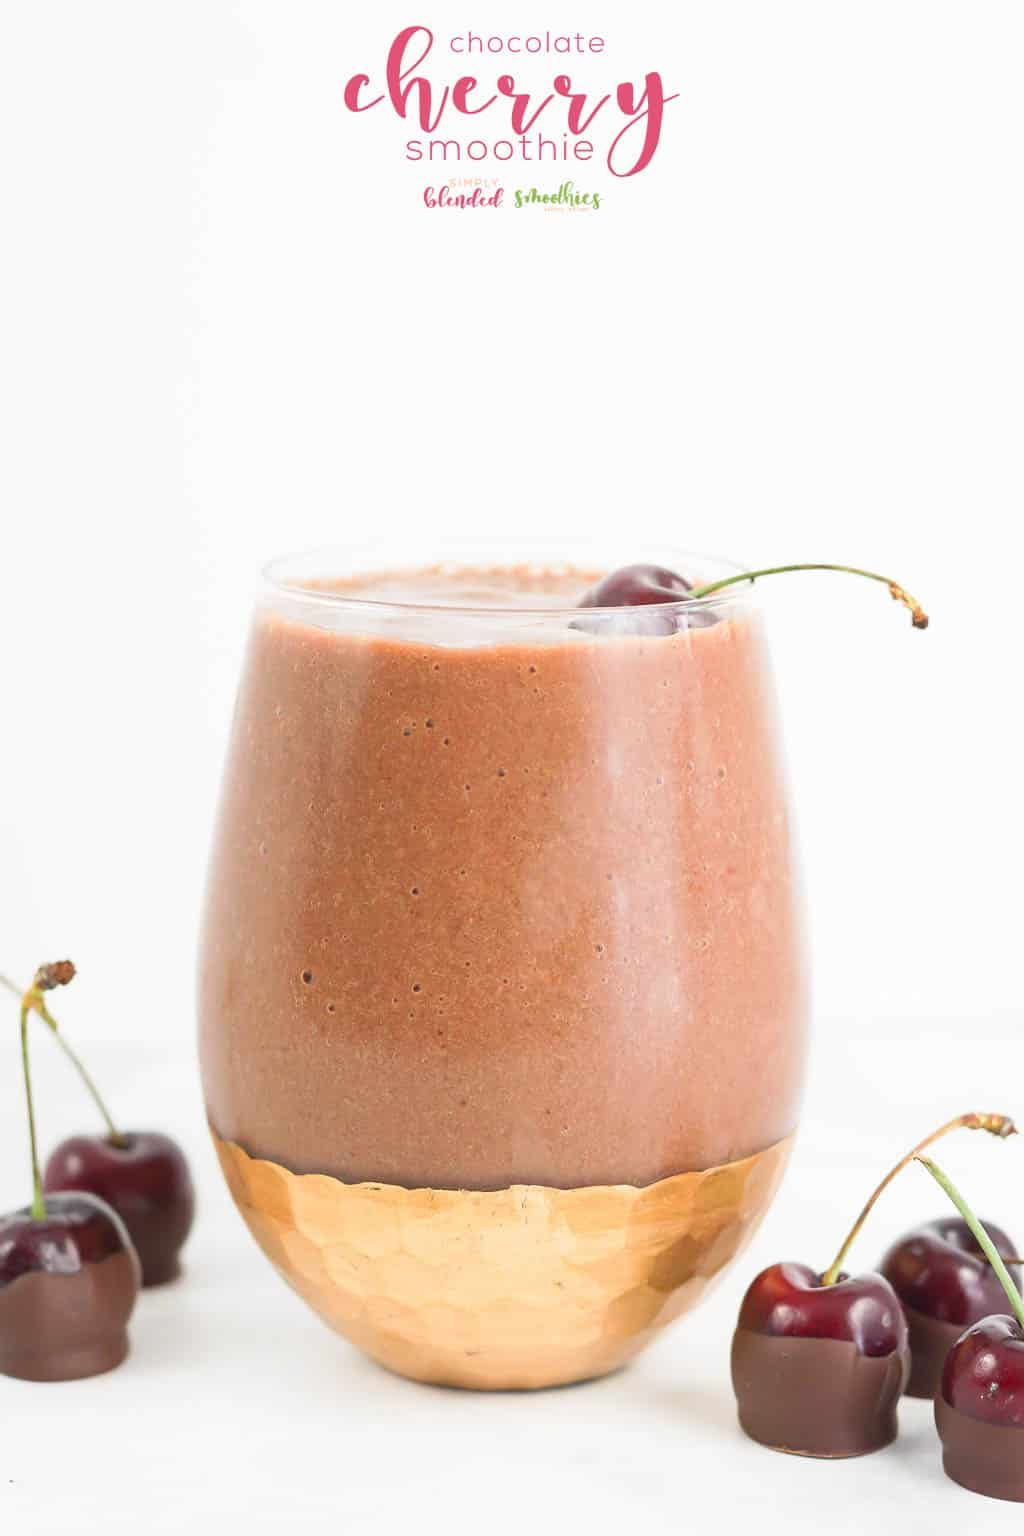 Chocolate Cherry Smoothie - an easy and healthy smoothie recipe